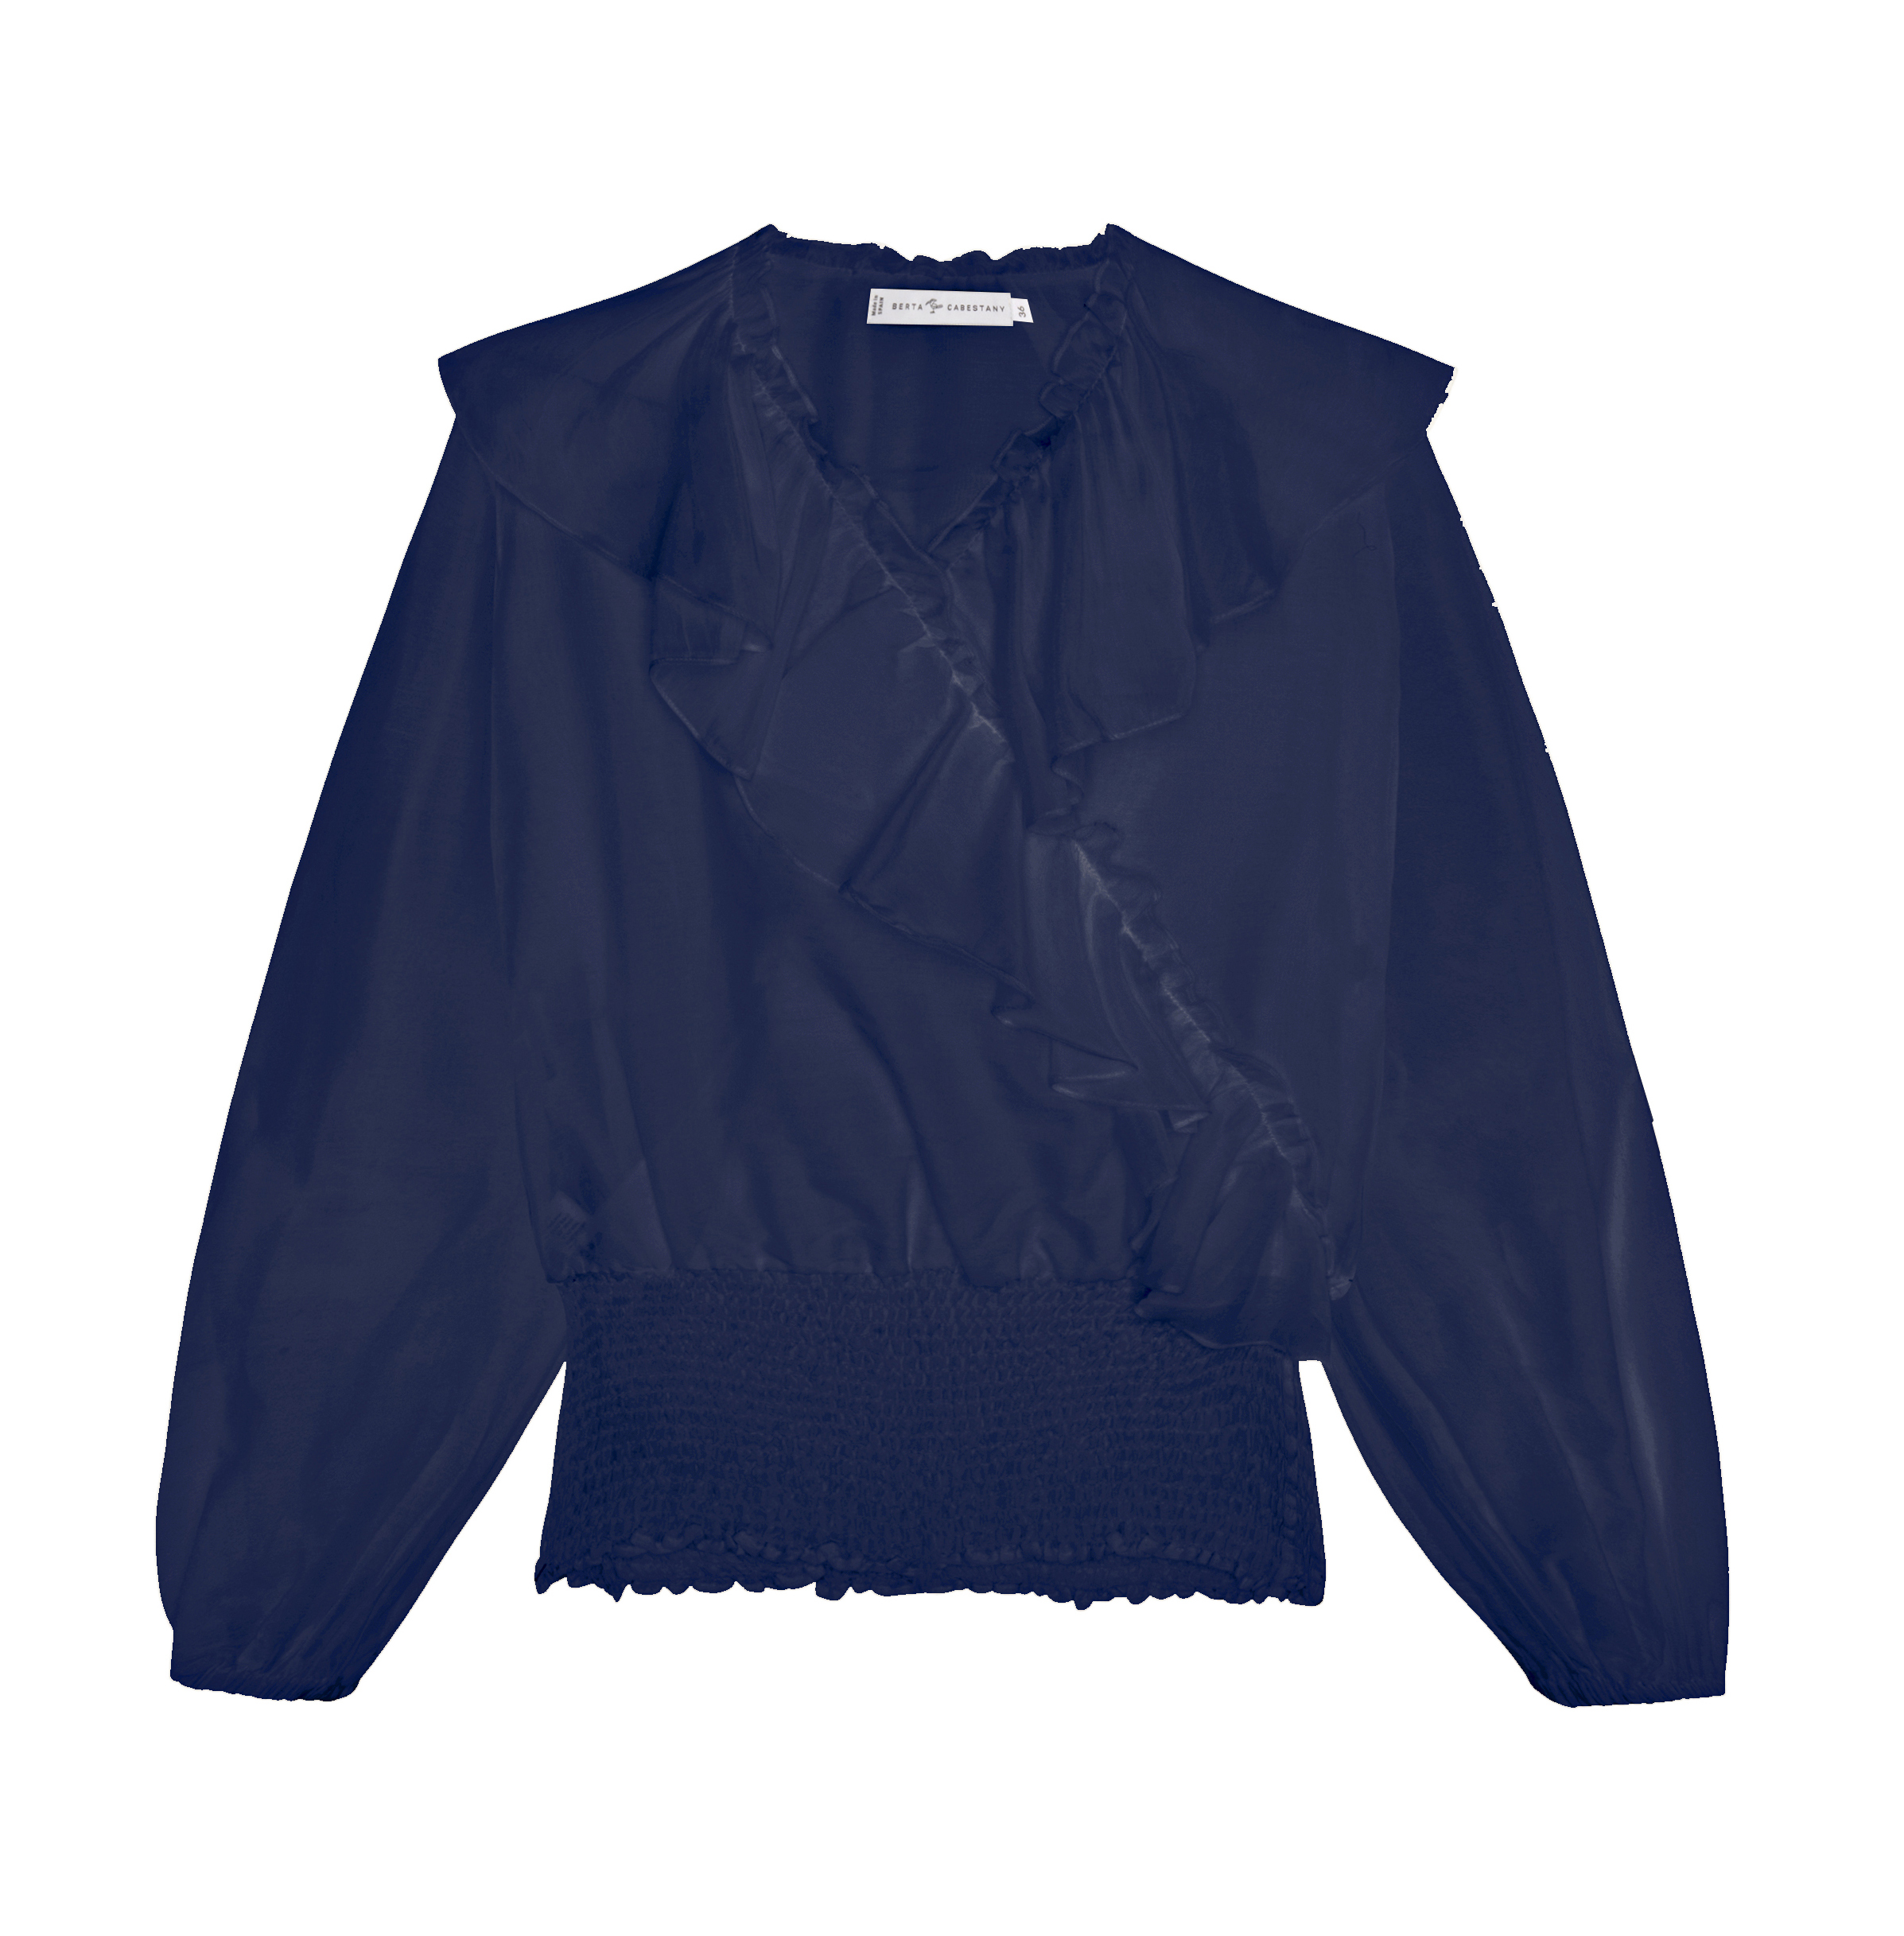 Rita Blouse by Berta Cabestany on curated-crowd.com